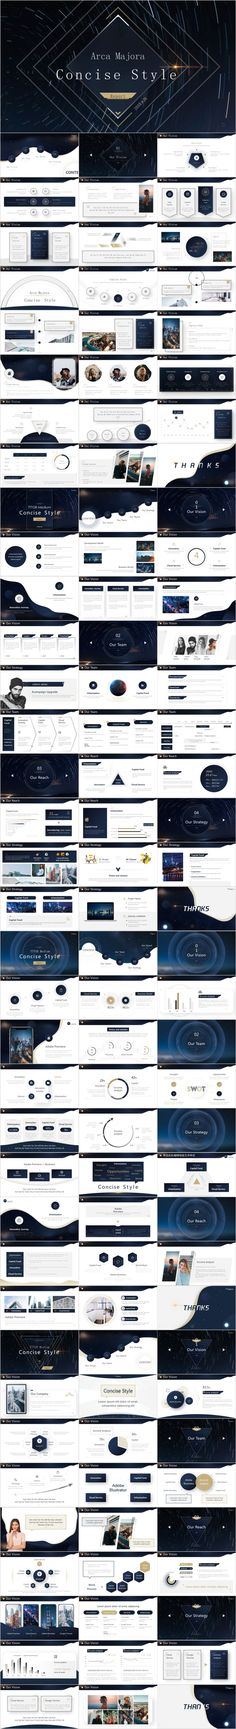 20 Best PowerPoint for Speakers images in 2017 | Music